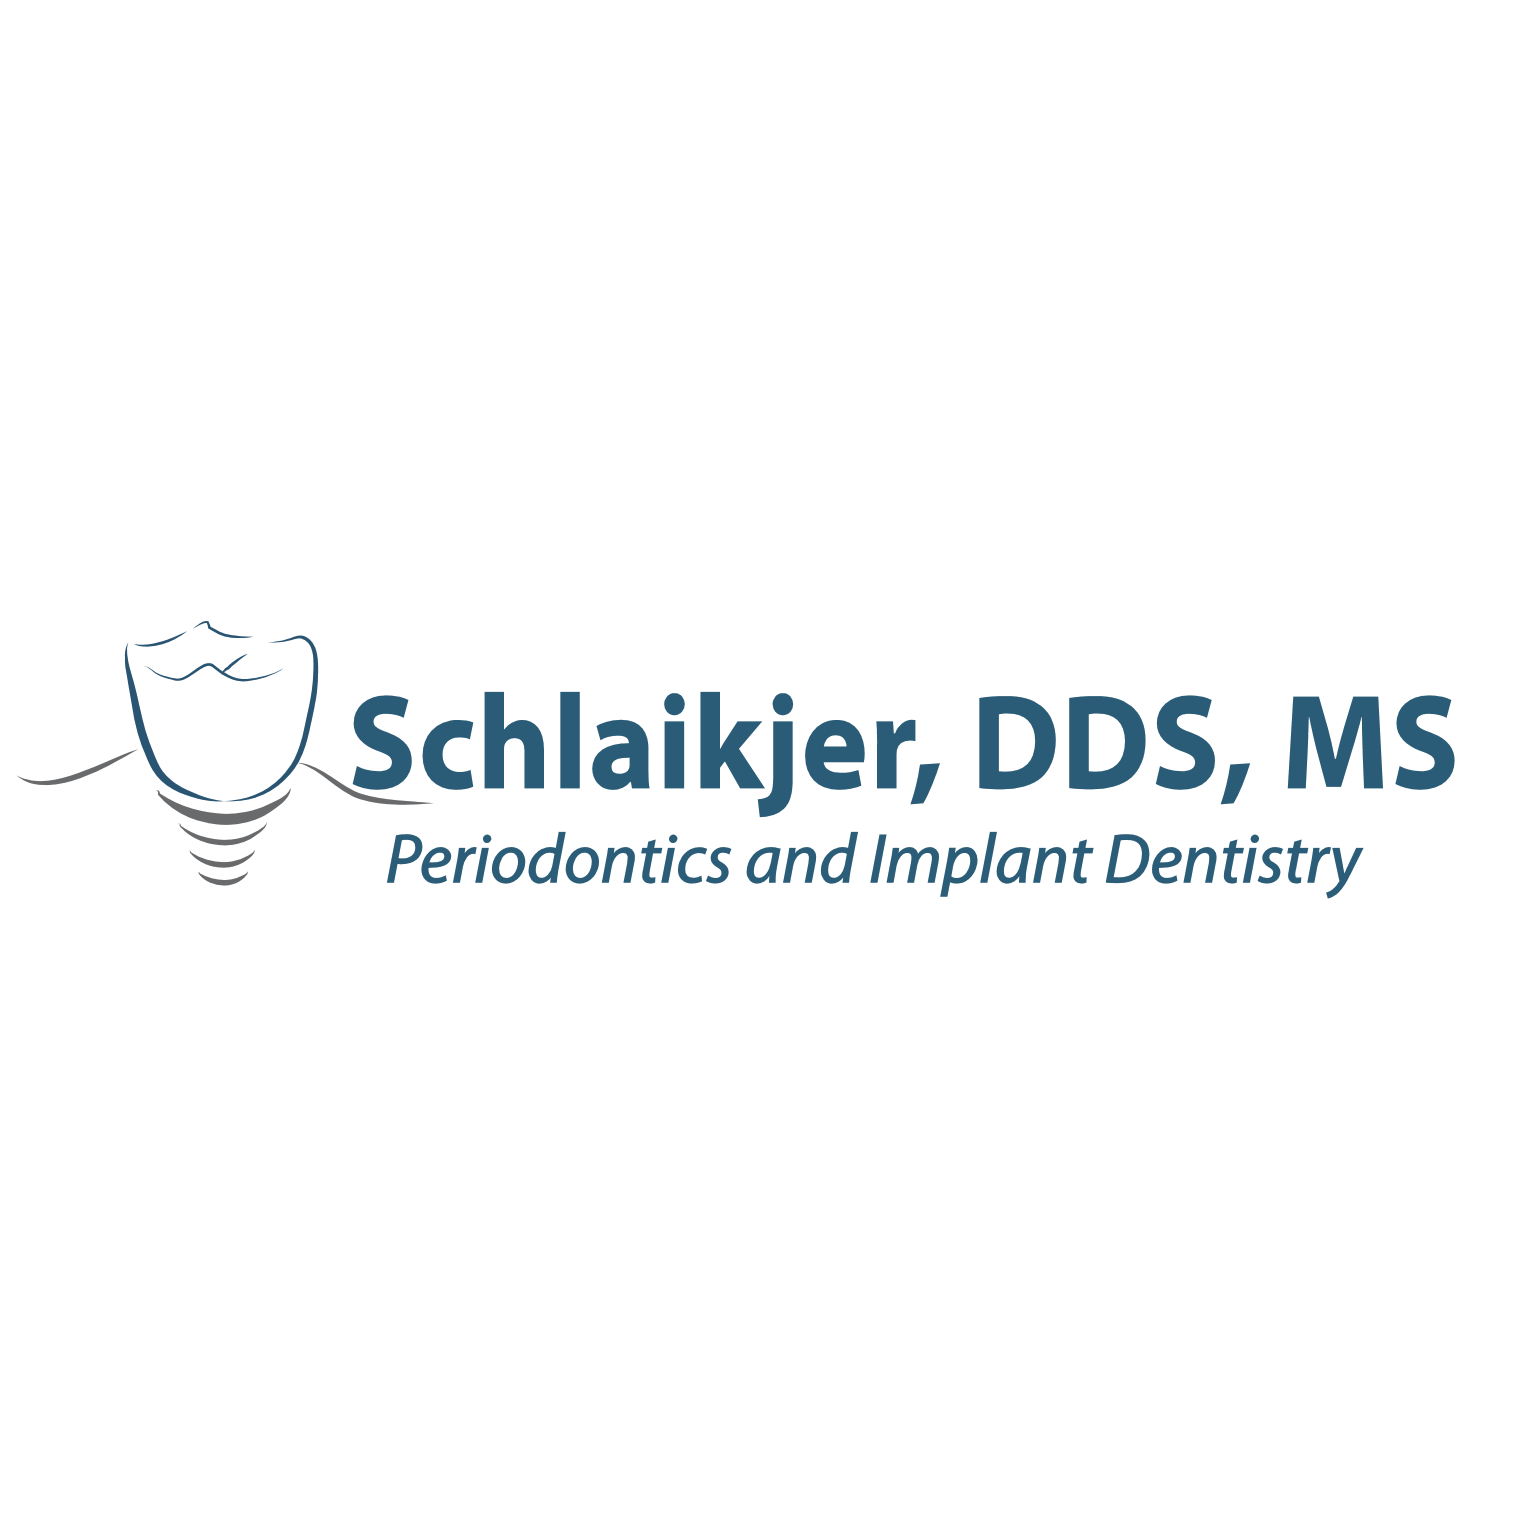 Justin M. Schlaikjer, DDS, MS Periodontics and Implant Dentistry